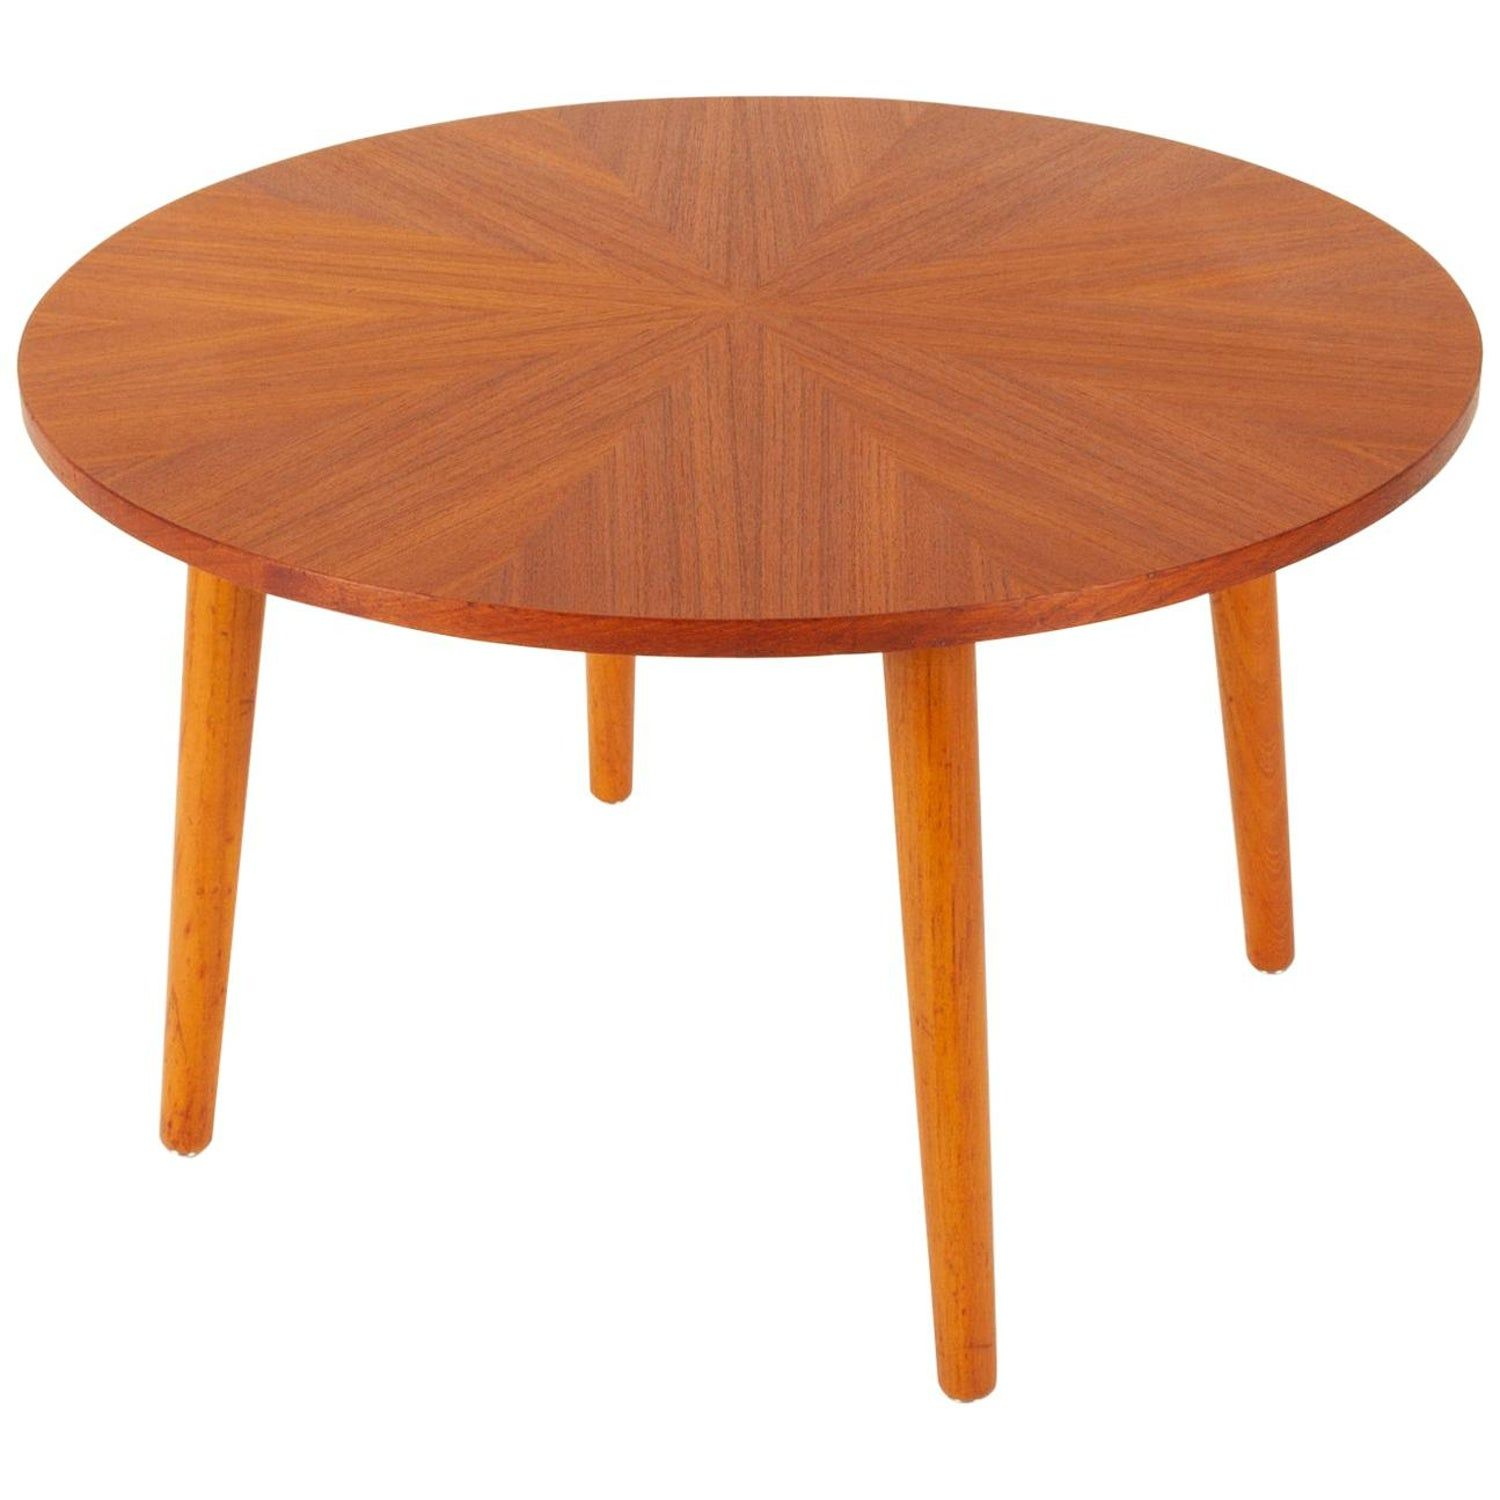 Danish Round Teak Coffee Table By Holger Georg Jensen 1960s Coffee Table Teak Coffee Table Round Coffee Table [ 1500 x 1500 Pixel ]